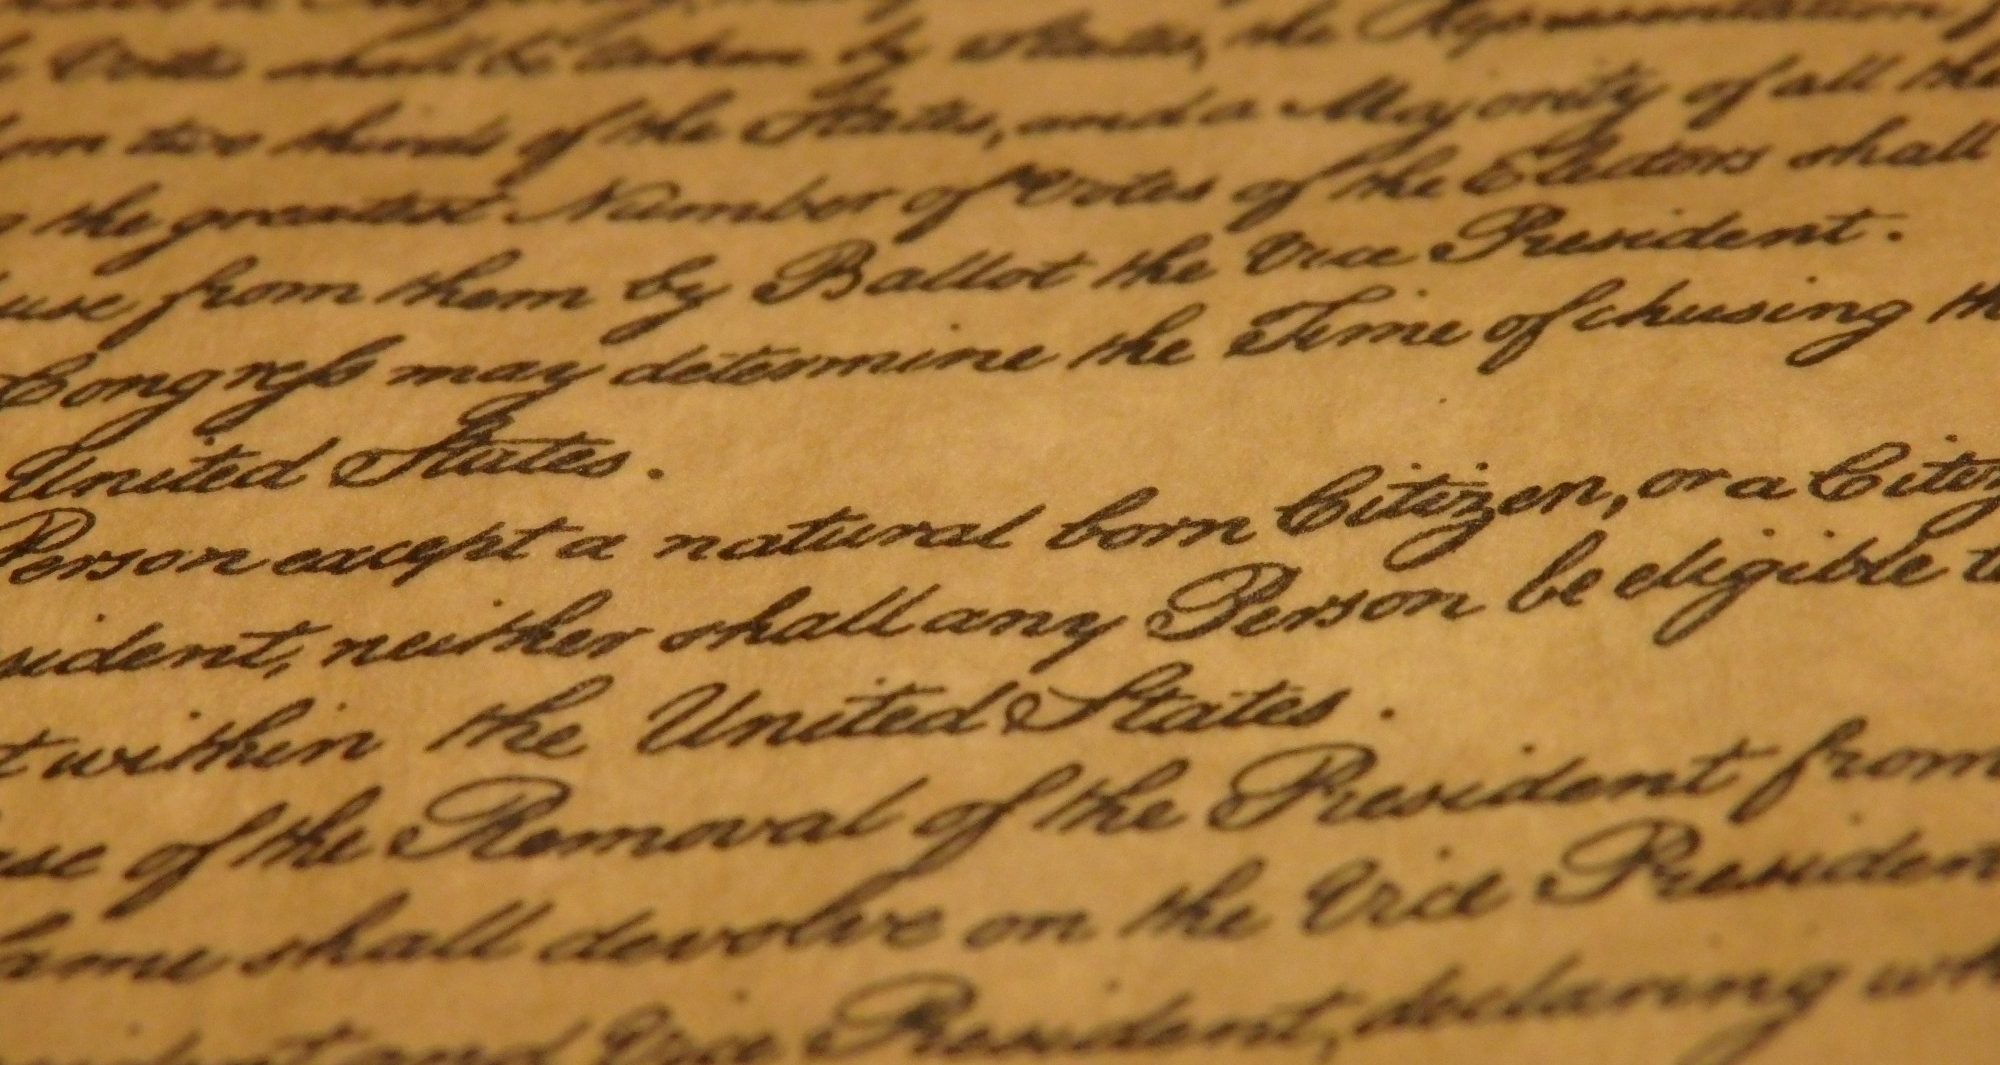 """a snippet from the Constitution mentioning that a person has to be a """"natural born Citizen"""" to be President of the US."""